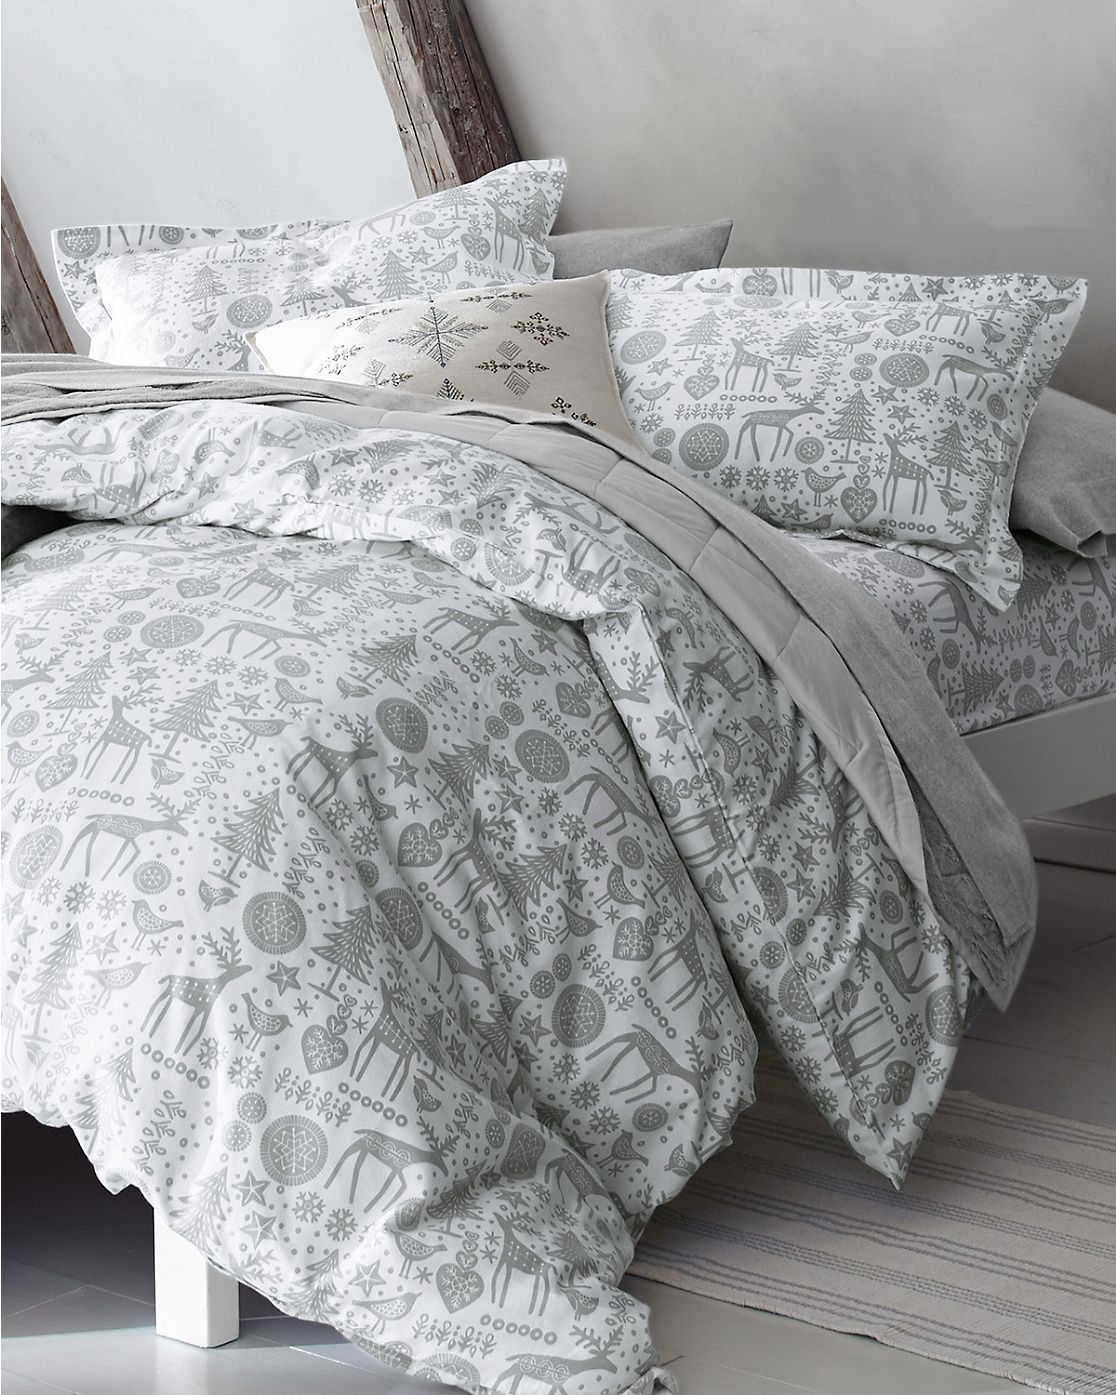 Nordic Forest Bedding Flannel bedding, Plaid bedding, Bed